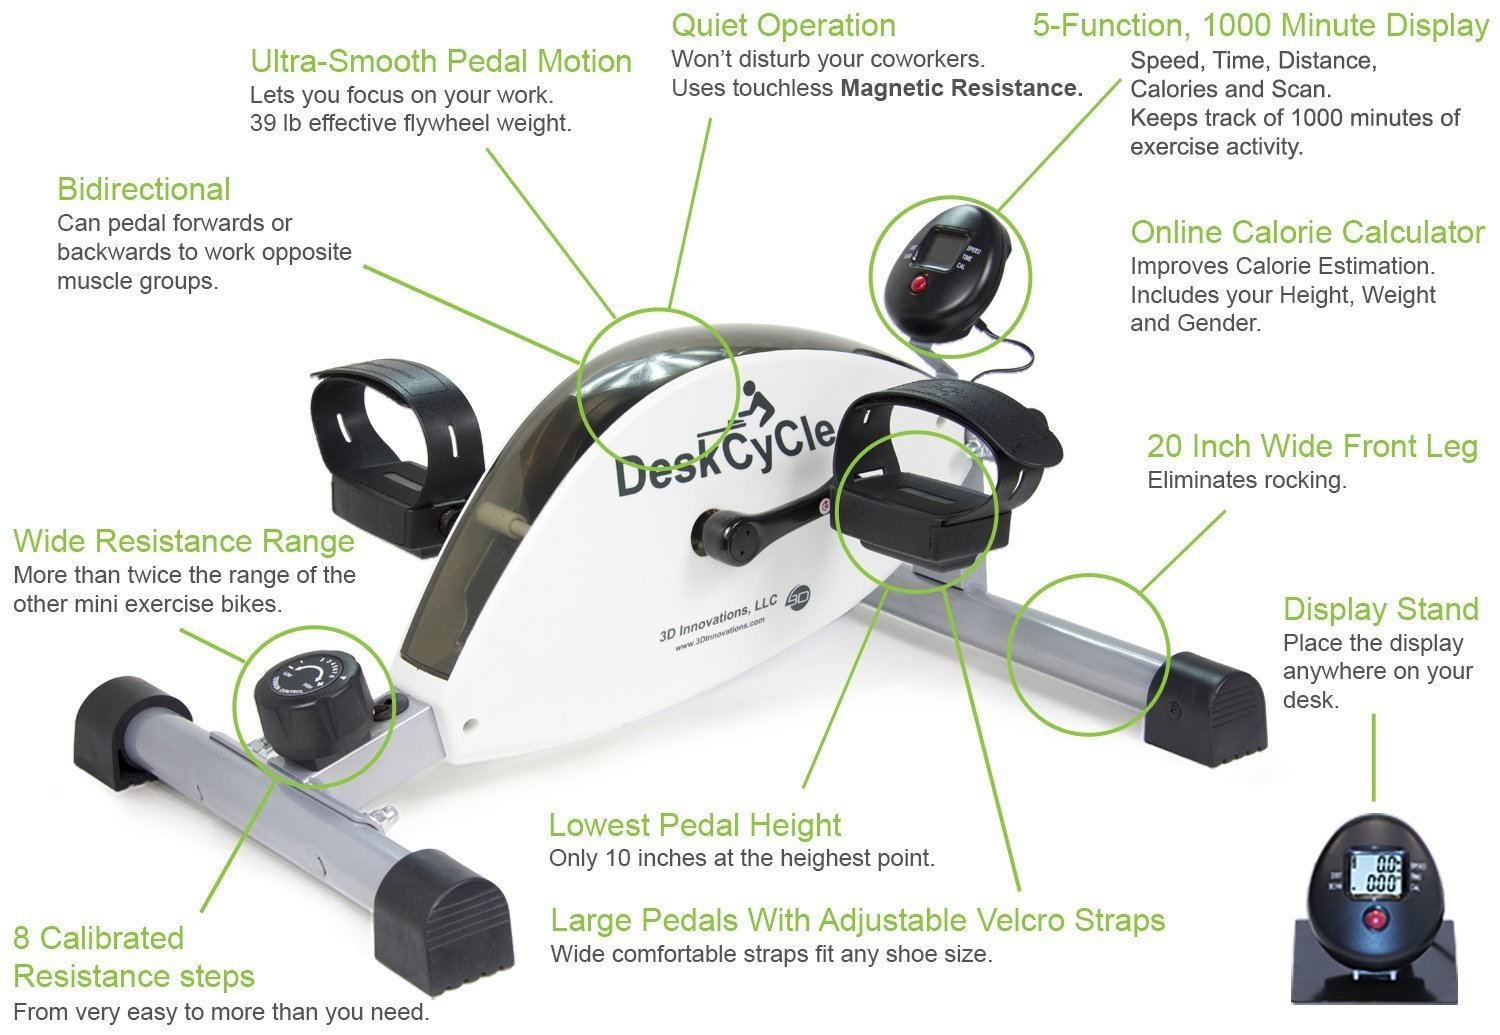 deskcycle features